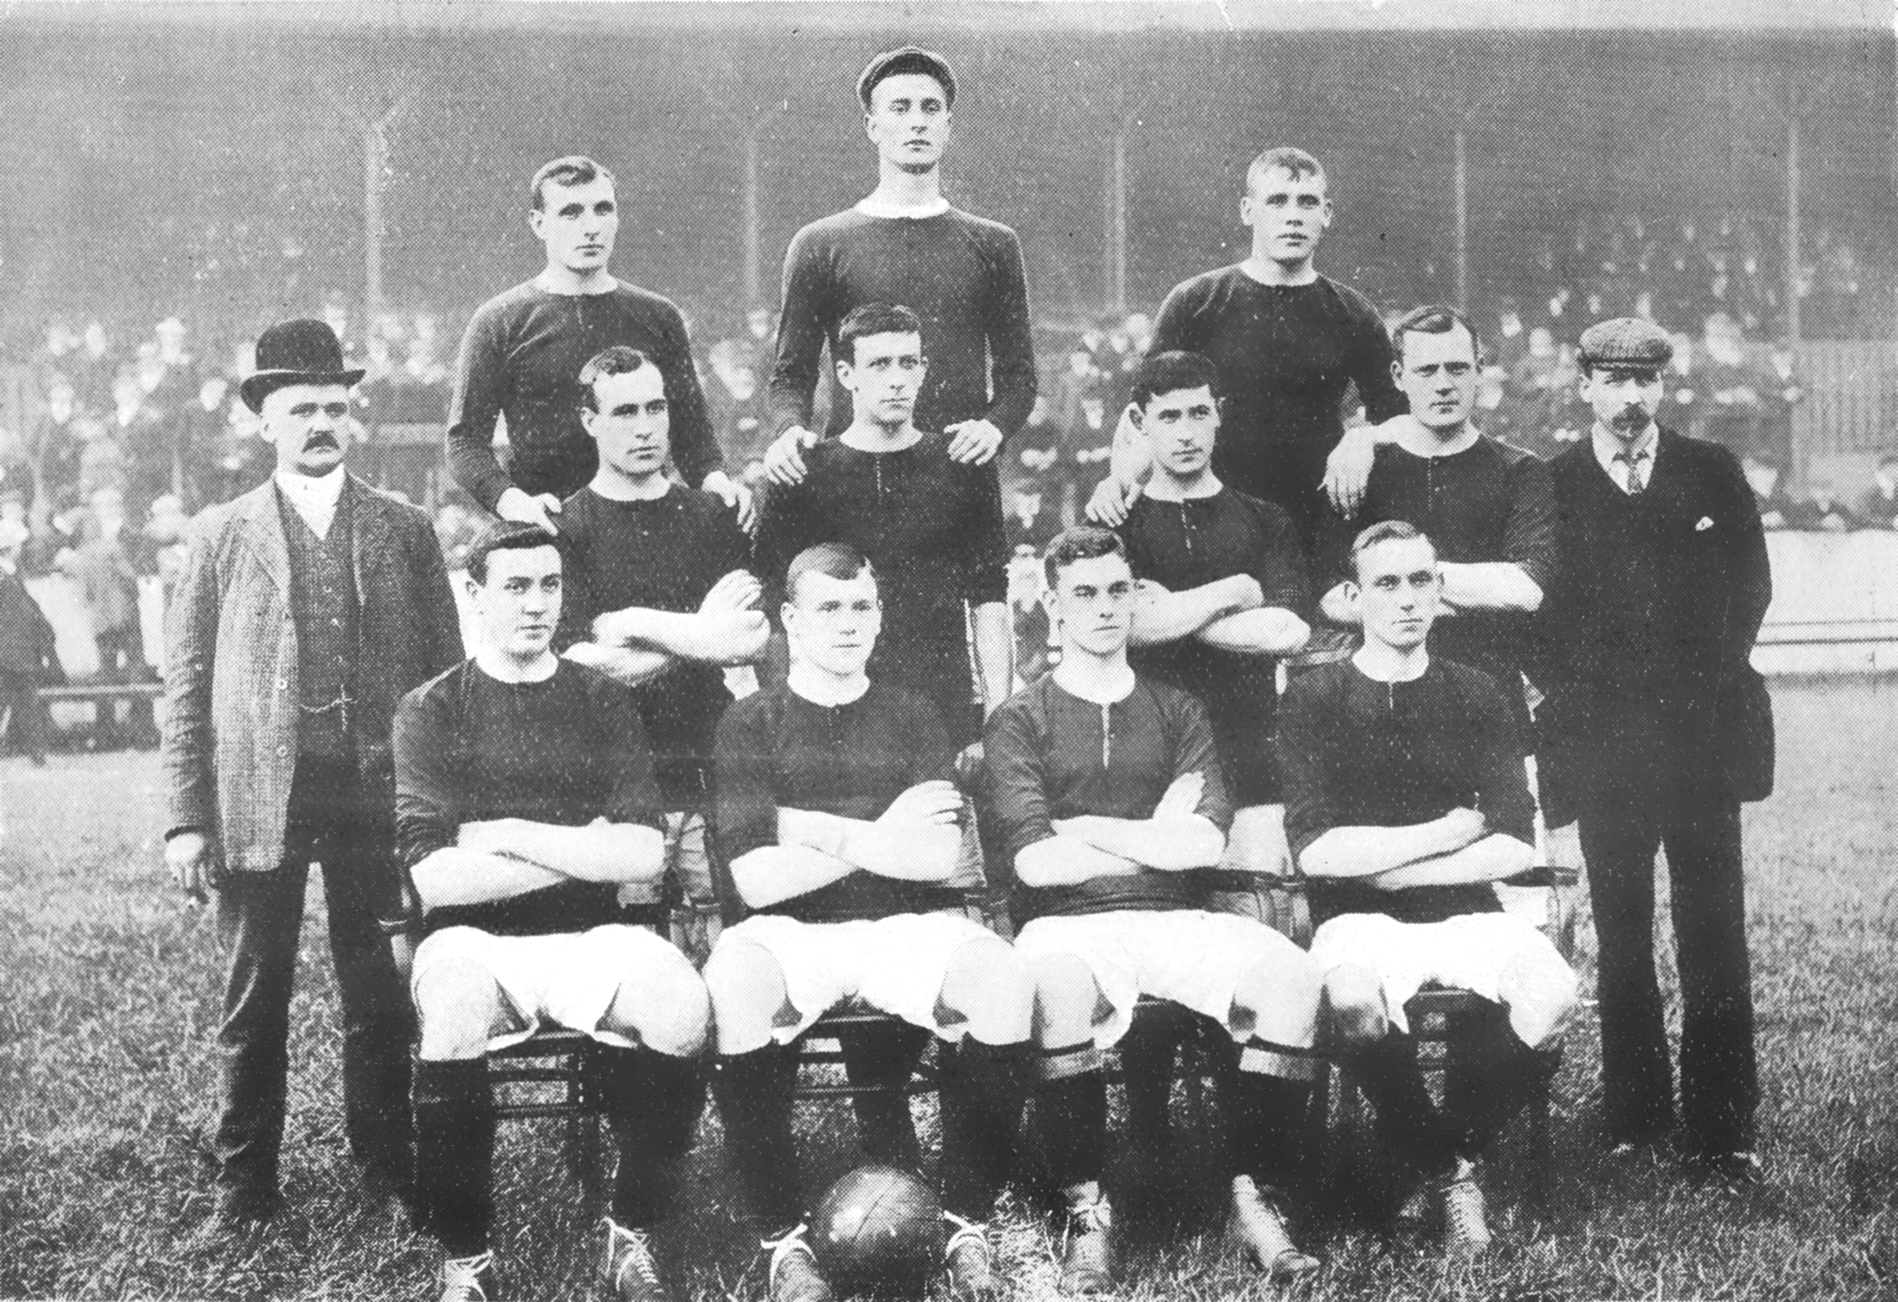 The Manchester United team at the start of the 1905–06 season in which they were runners up in Division 2 and promoted